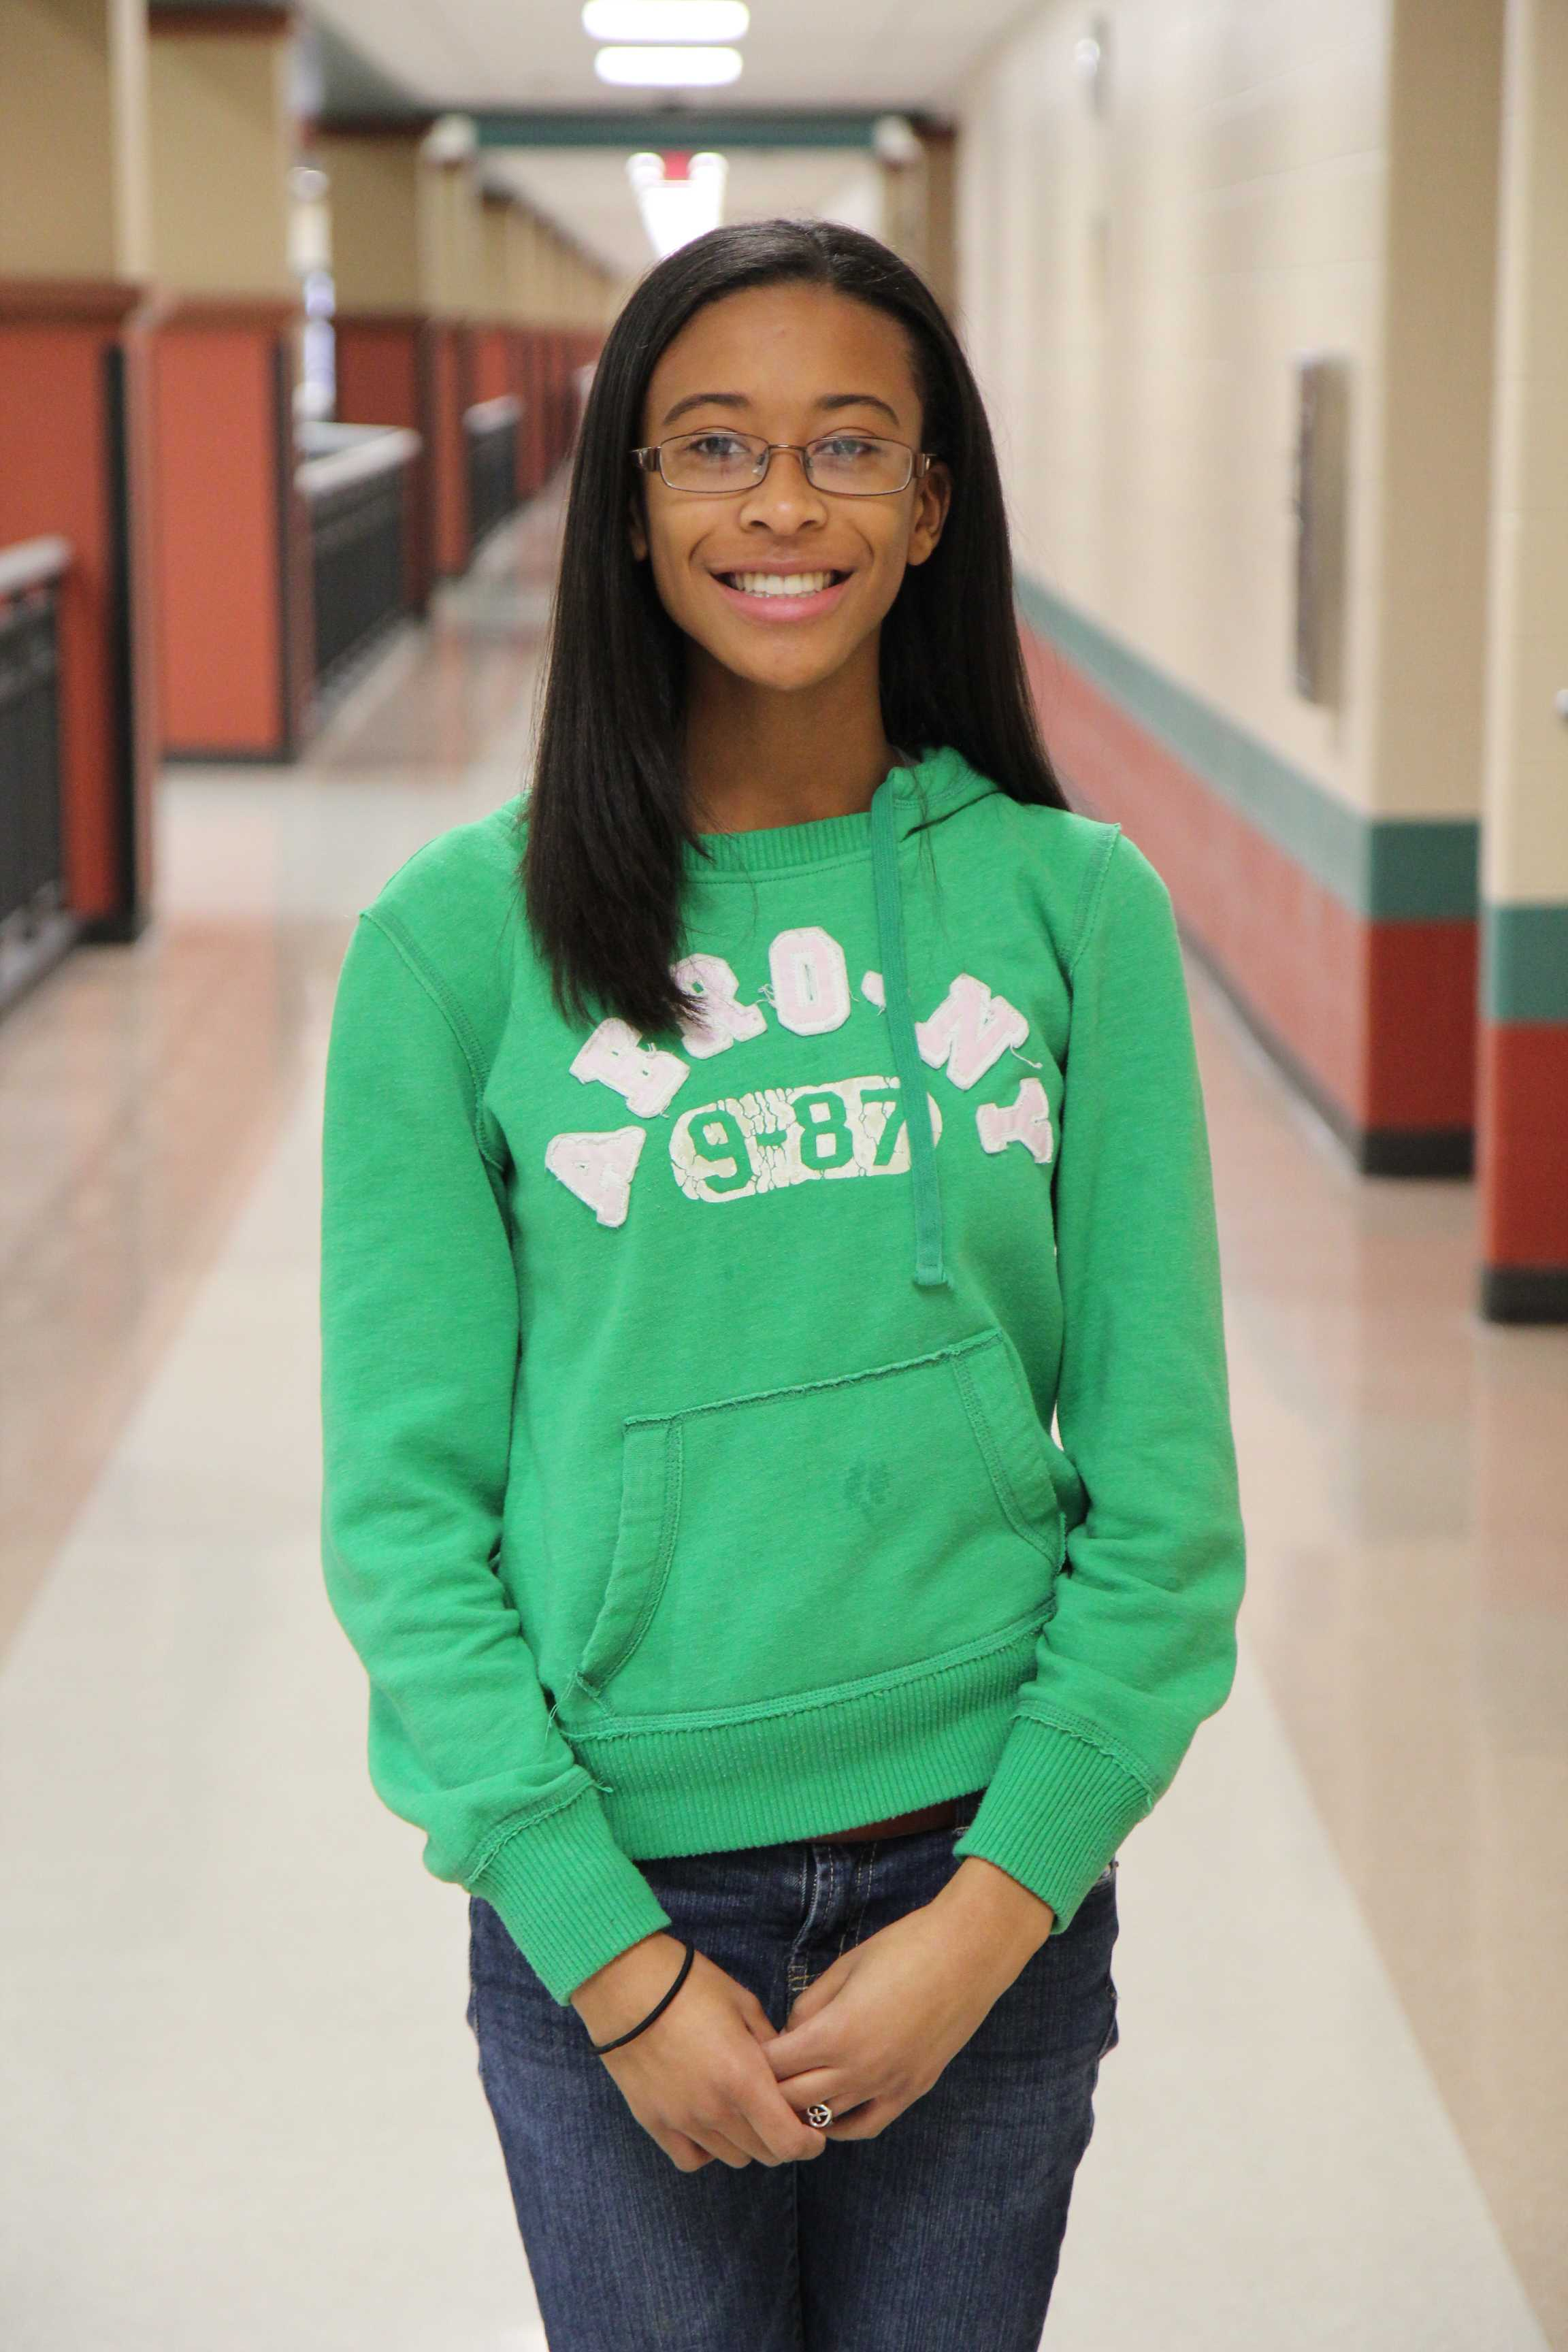 Lasker was the first ever George Ranch student to qualify for All-State Band.